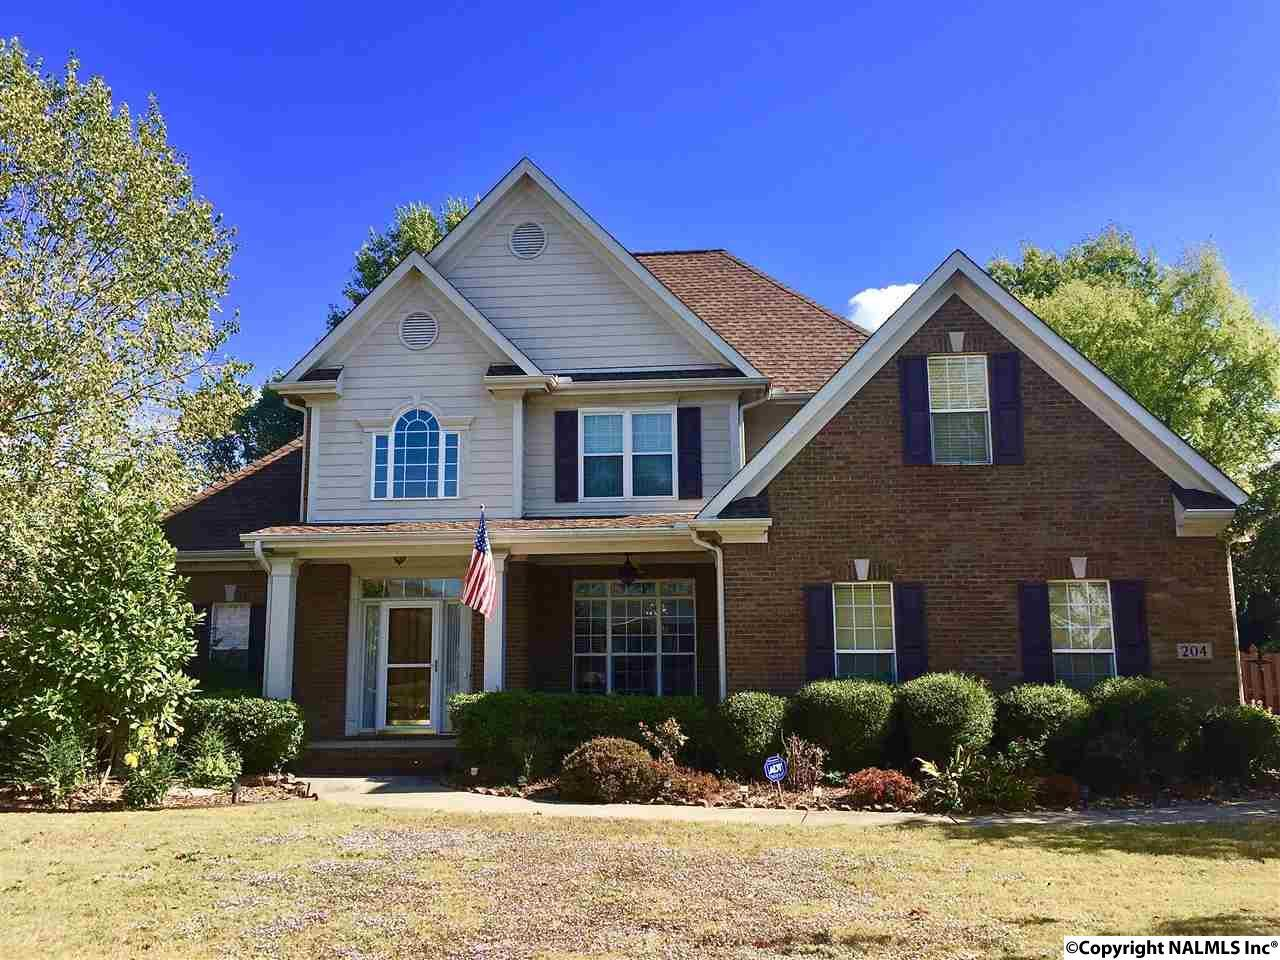 204 mainsail way madison al 35758 mls 1056243 for Madison al home builders